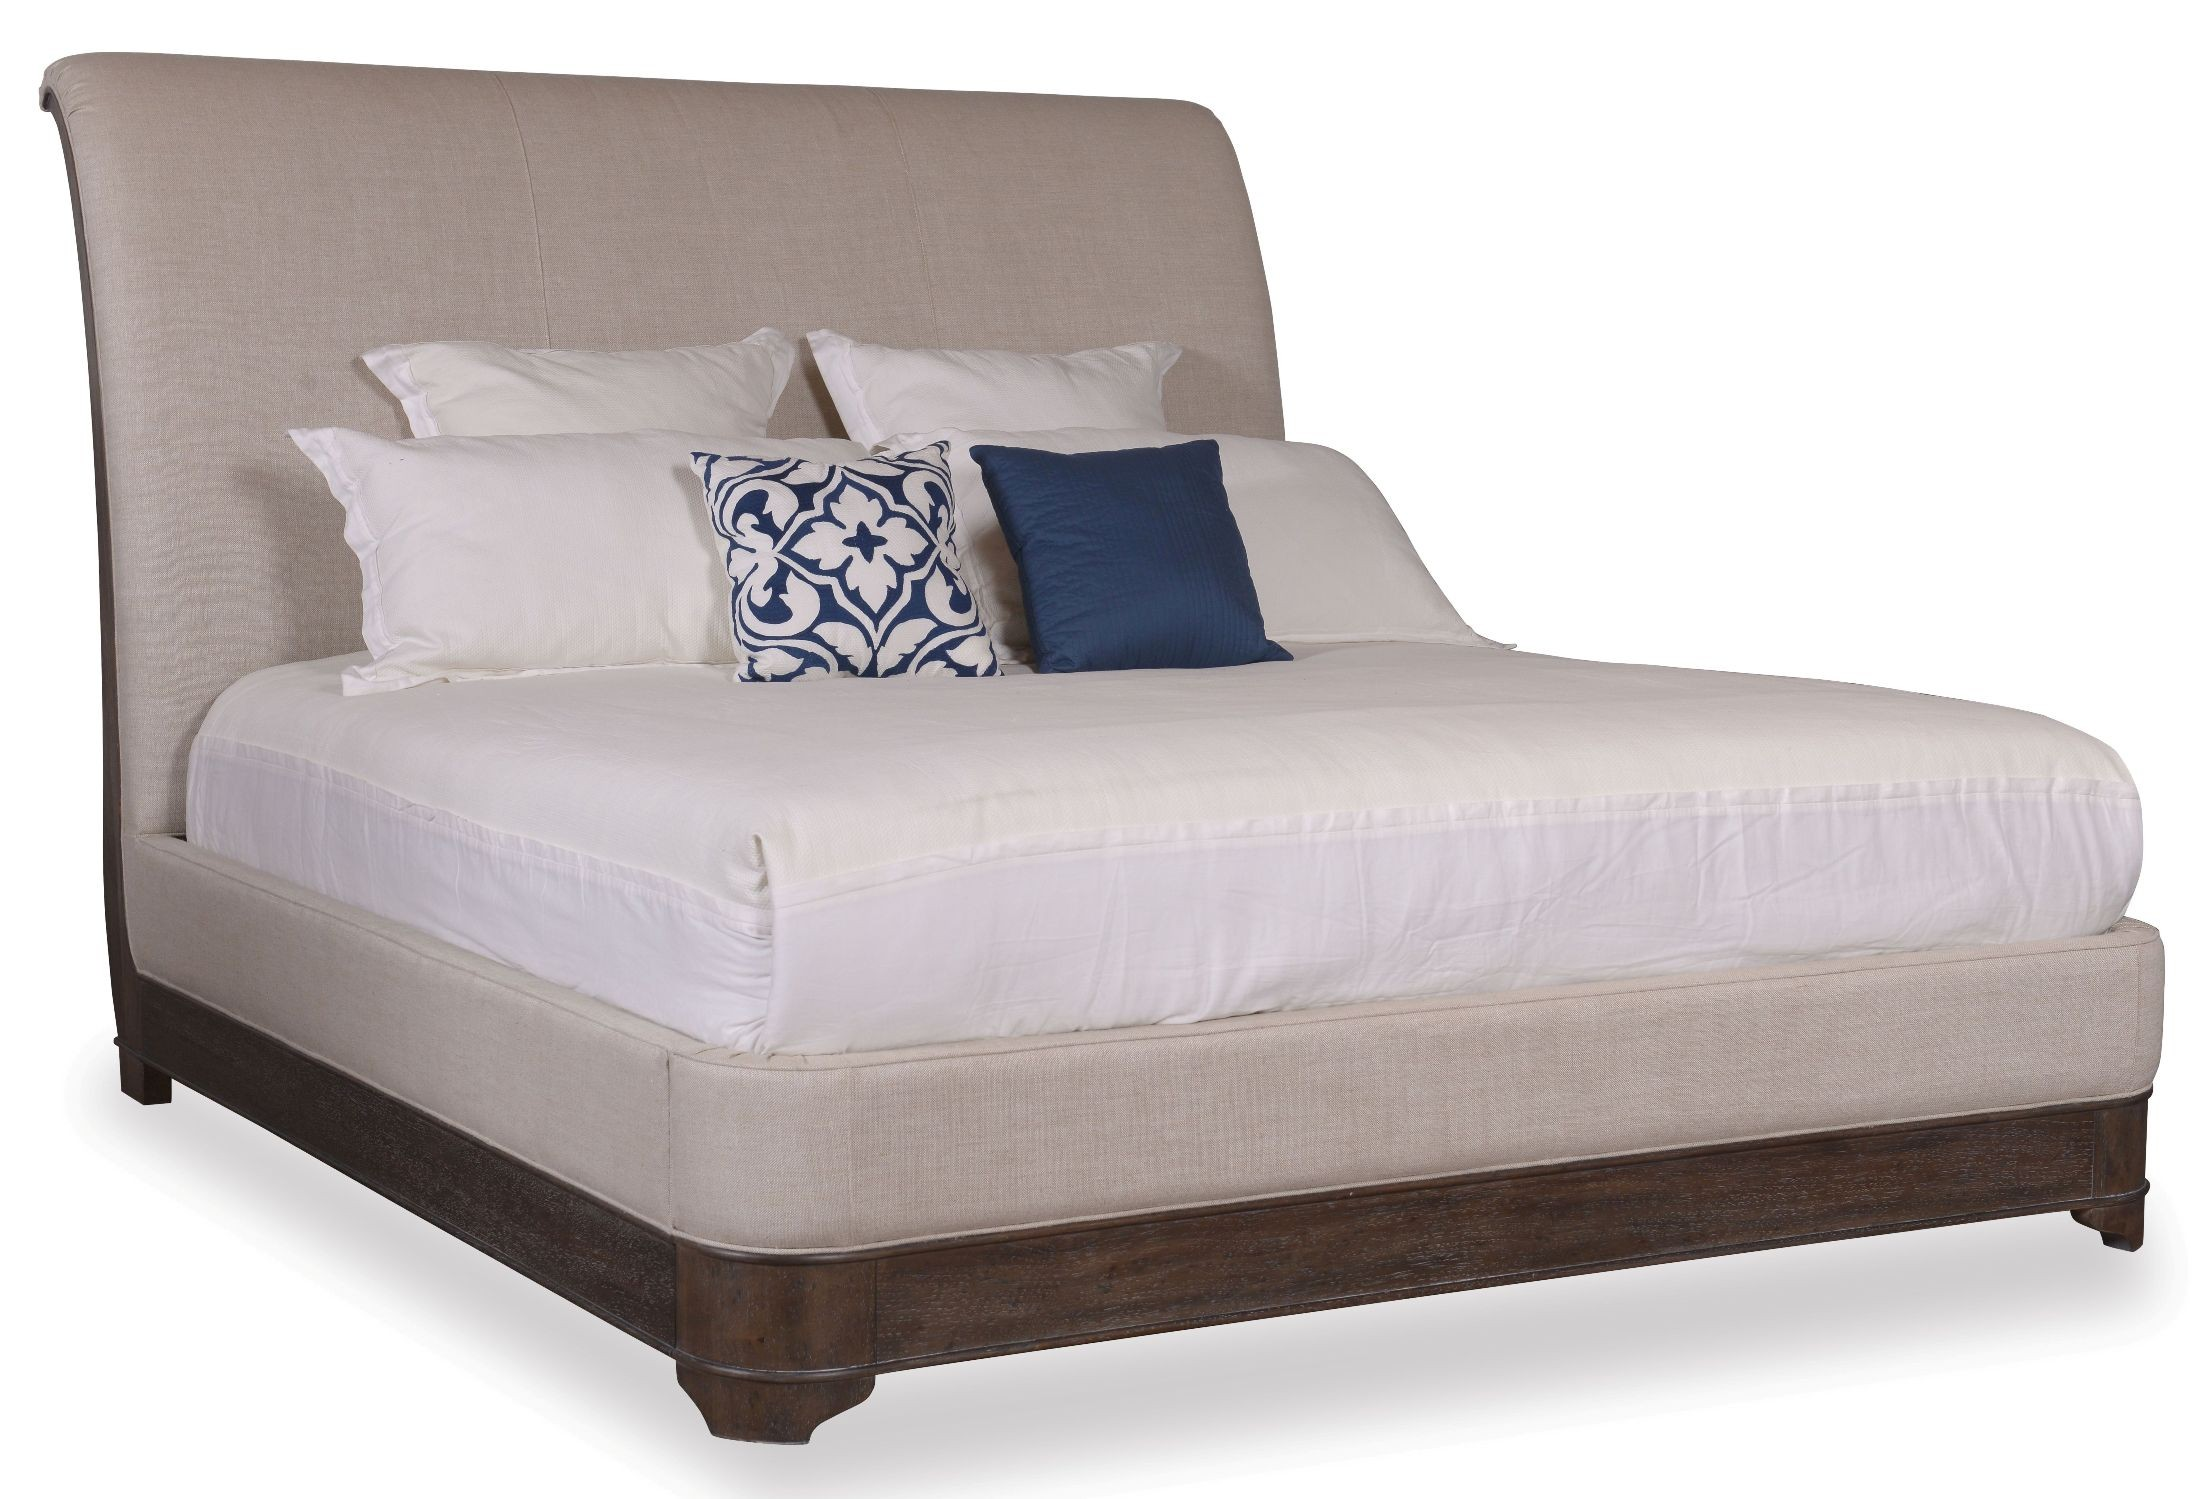 St Germain Queen Upholstered Sleigh Bed From Art